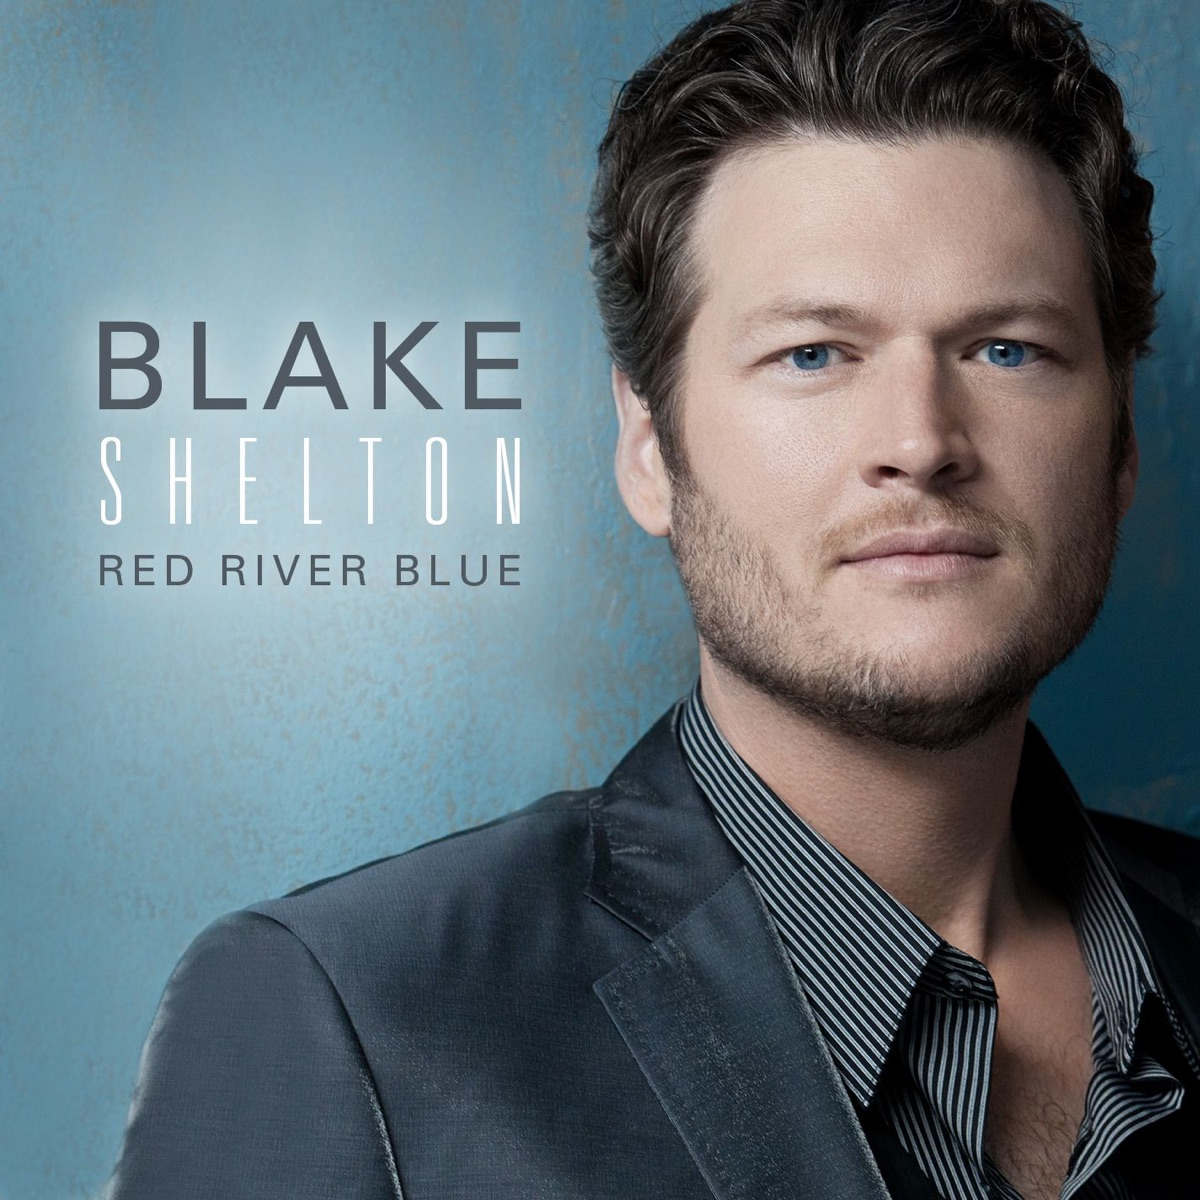 Red River Blue Deluxe Version Blake Shelton CD cover